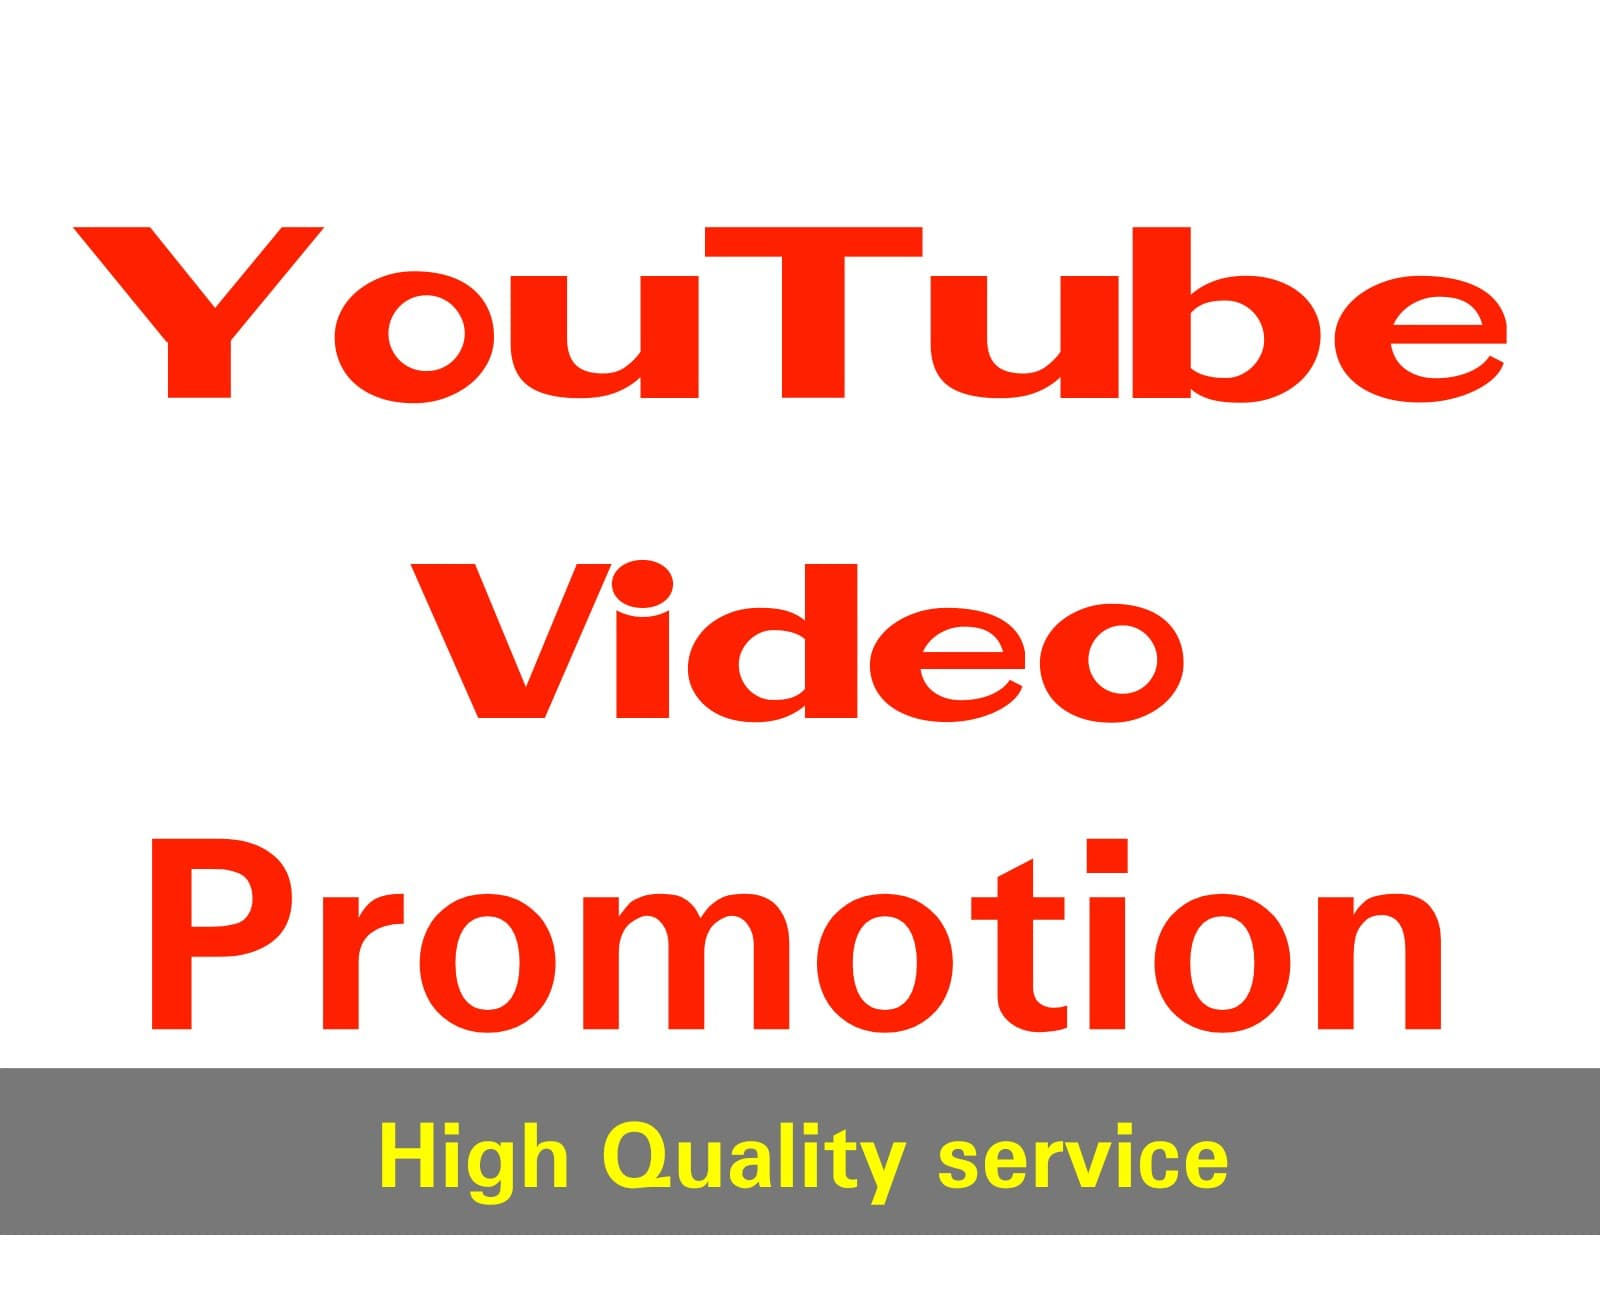 NON-DROP & HIGH QUALITY YOUTUBE PROMOTION firstly Delivery time